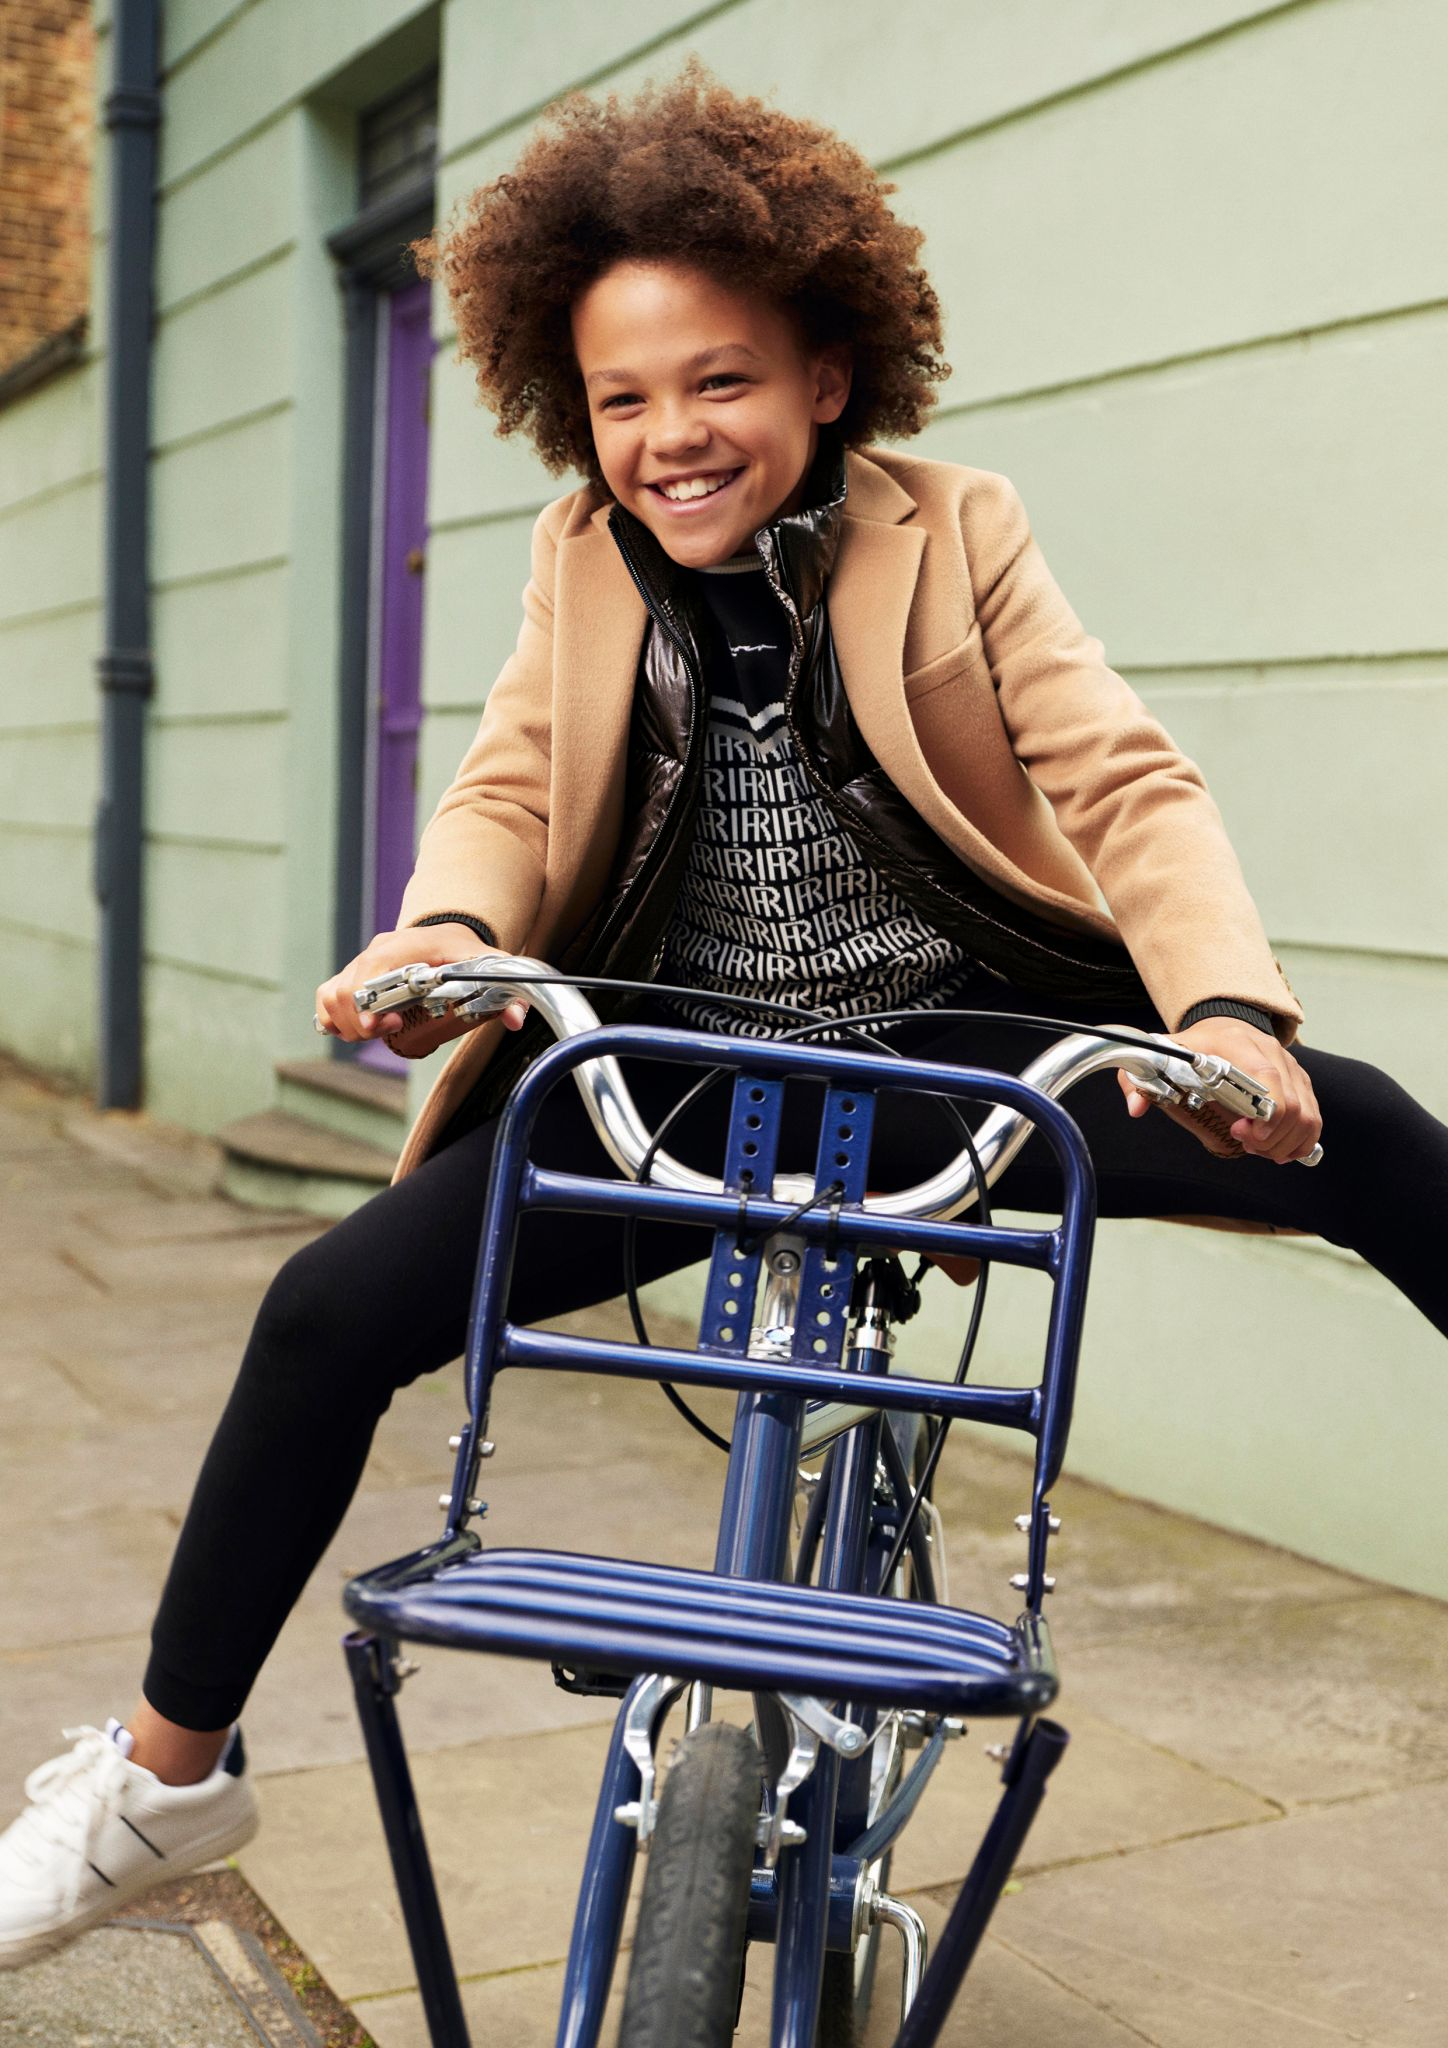 Young boy modelling River Island's autumn collection while riding a bike